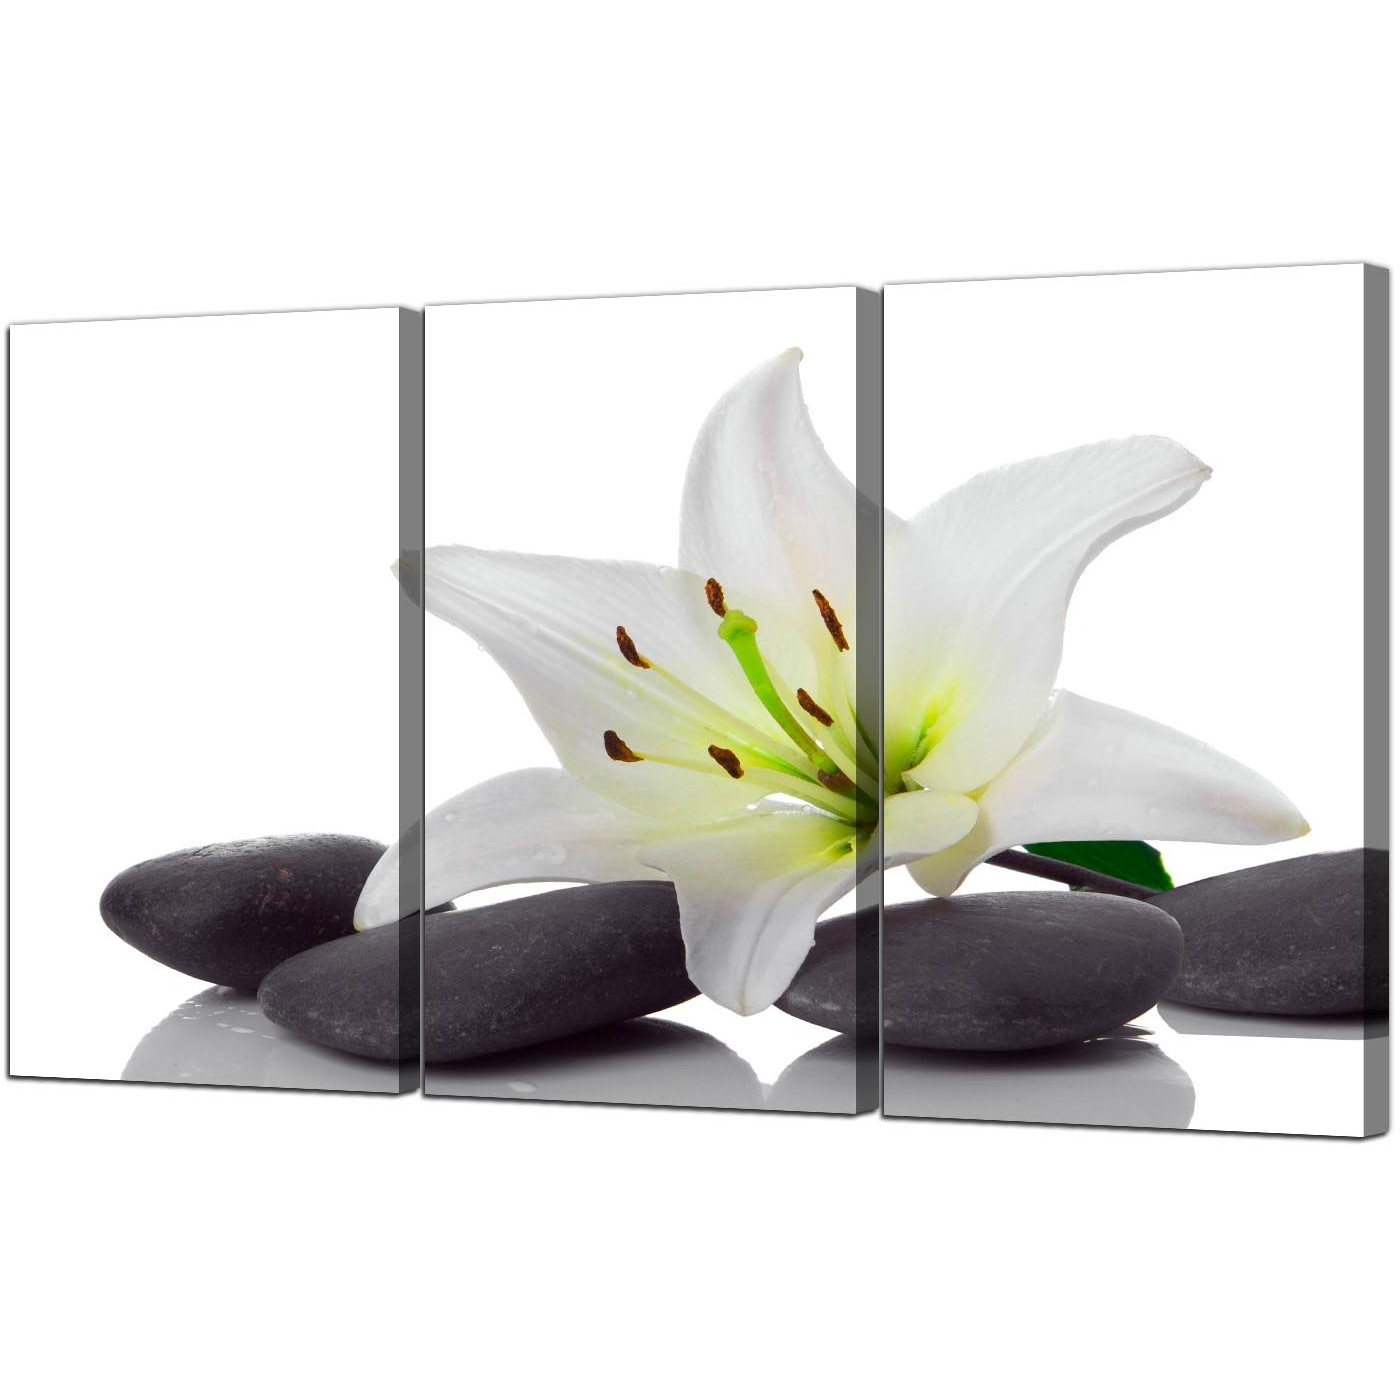 Bathroom Canvas Wall Art Pertaining To Favorite Extra Large Lily Canvas Wall Art 3 Panel For Your Bathroom (View 2 of 15)